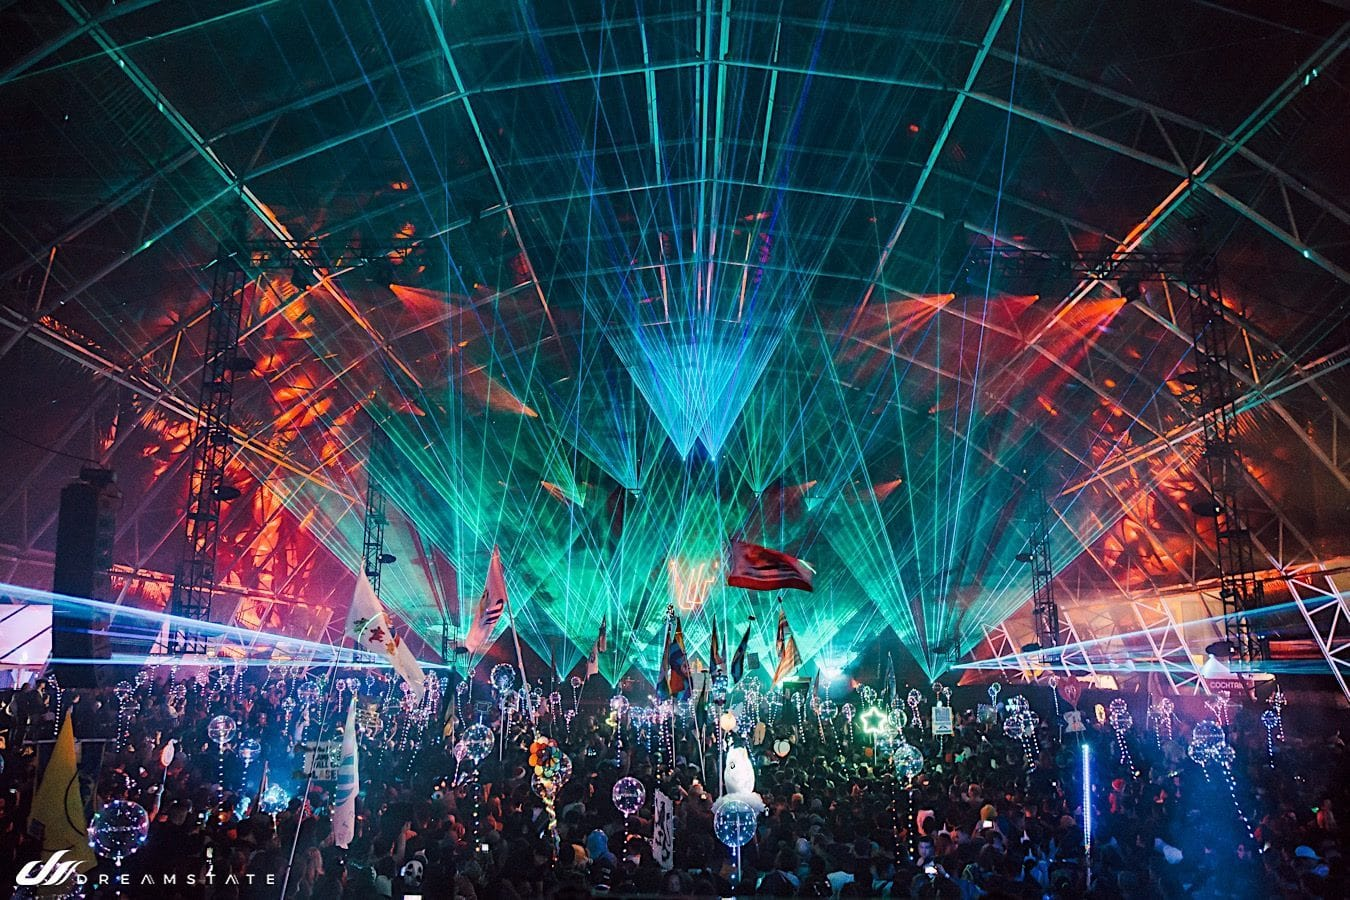 Dreamstate Lineup 2019